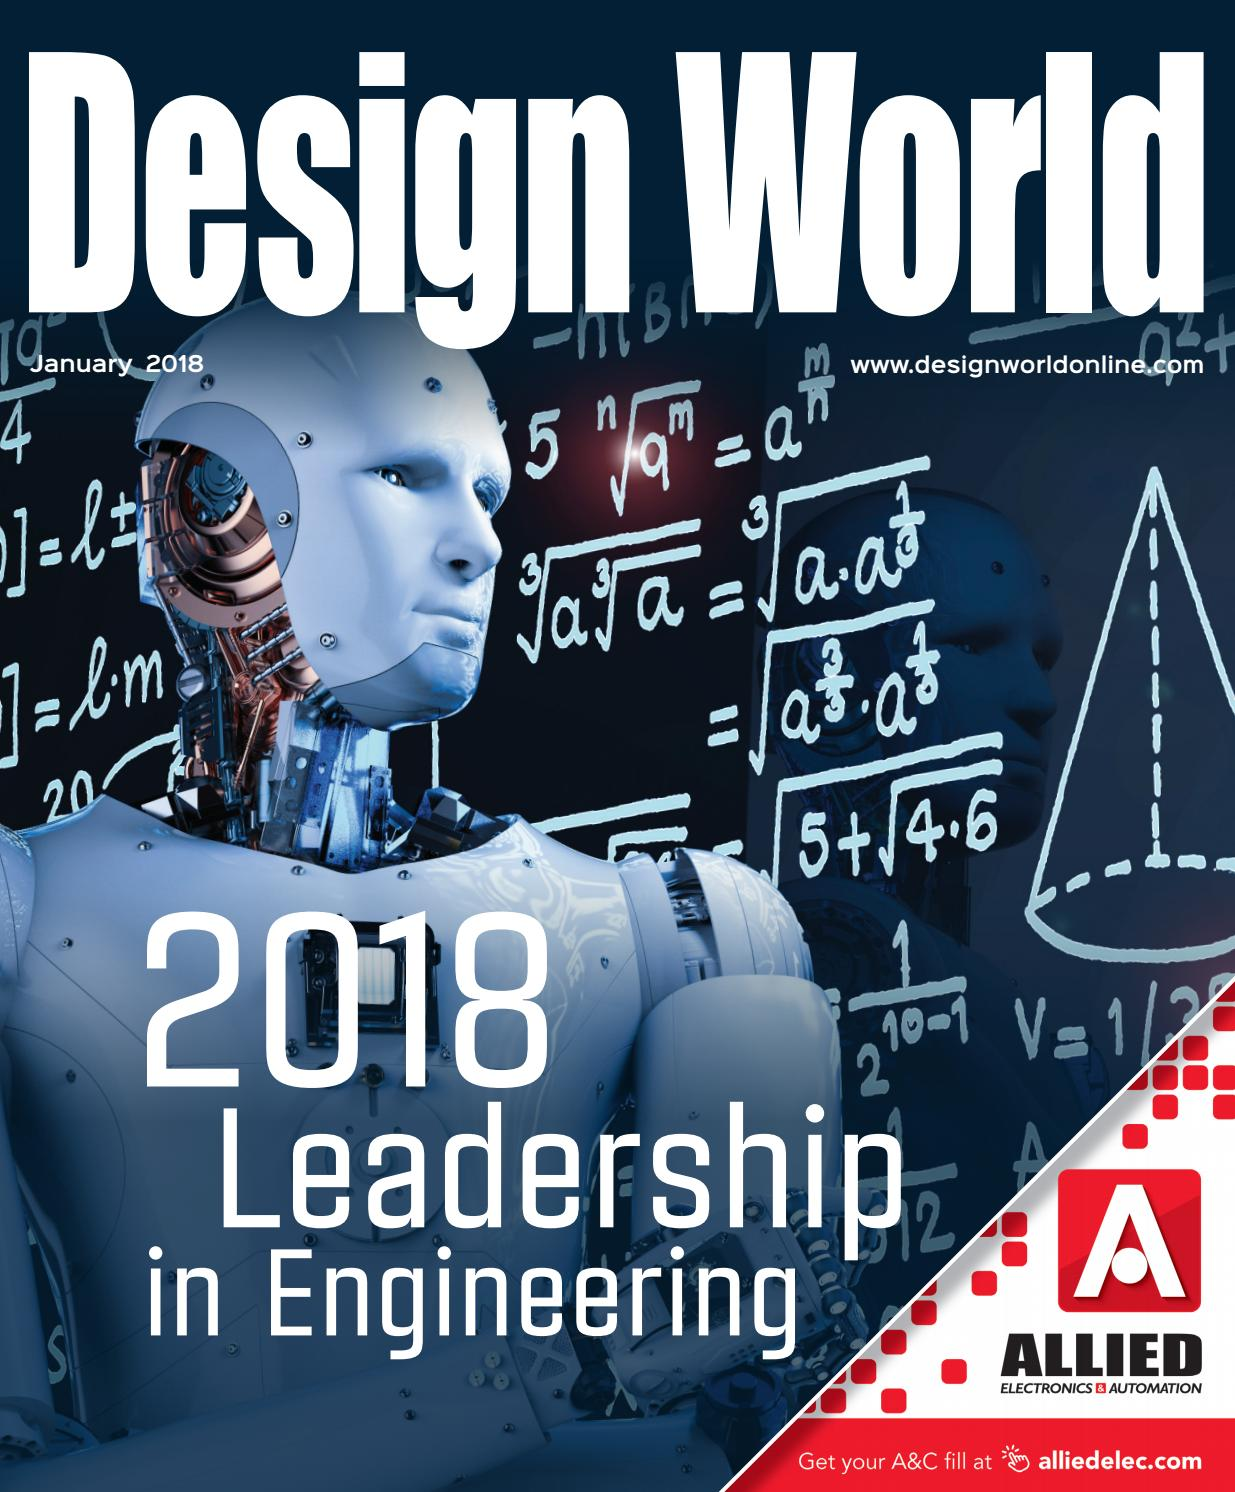 Design World January 2018 leadership pages by WTWH Media LLC - issuu